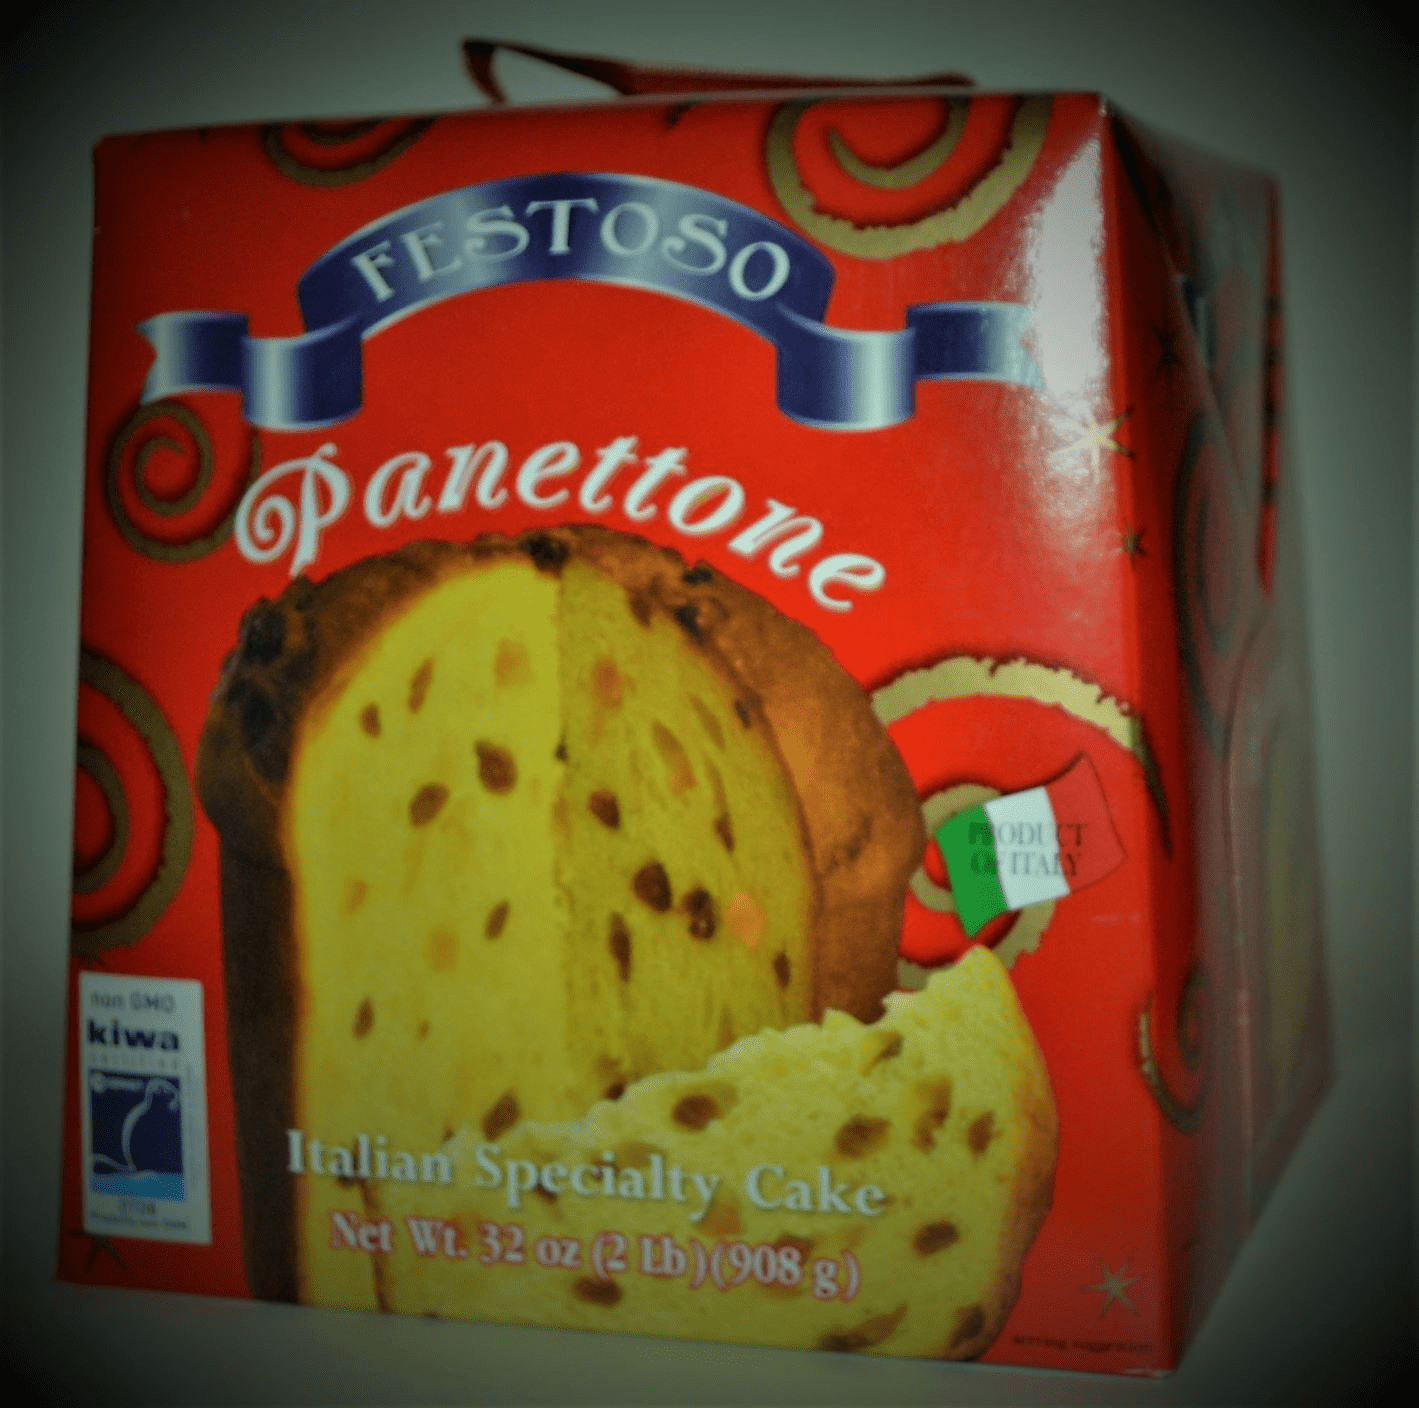 Pannettone Festoso from Italy 2 Lbs.